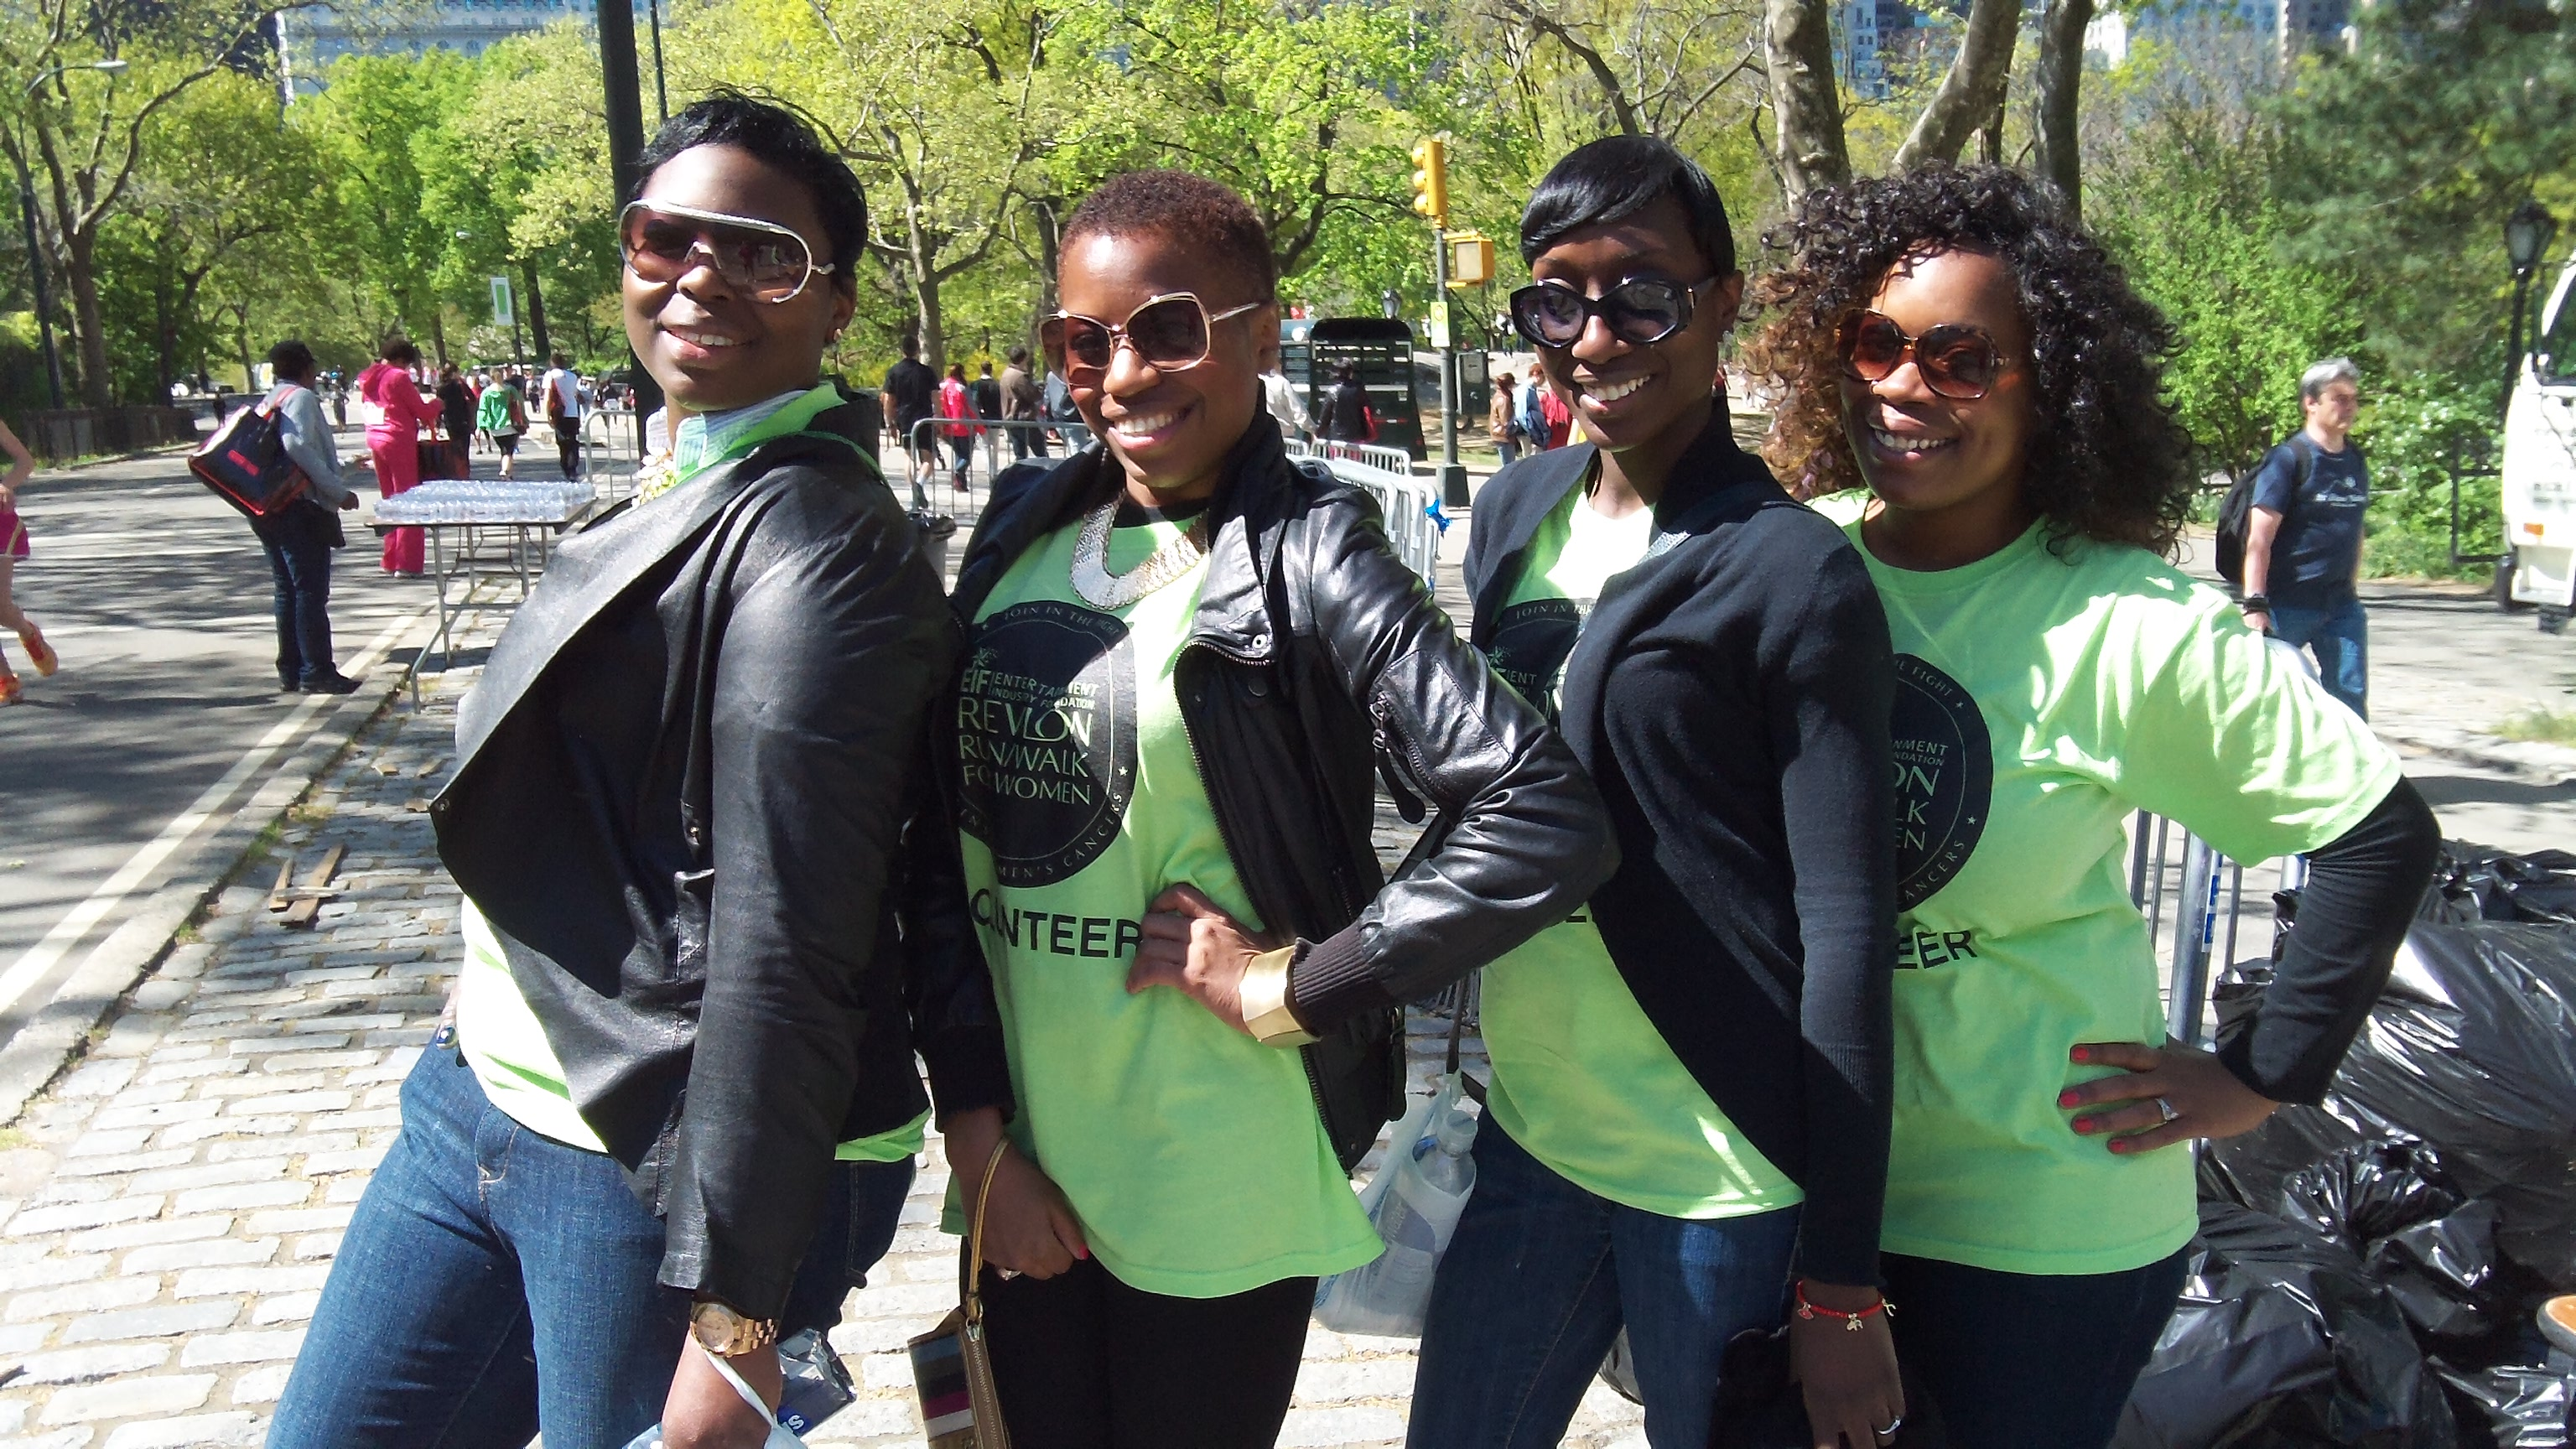 Embrace Her Community Launches at the Revlon Run/Walk!